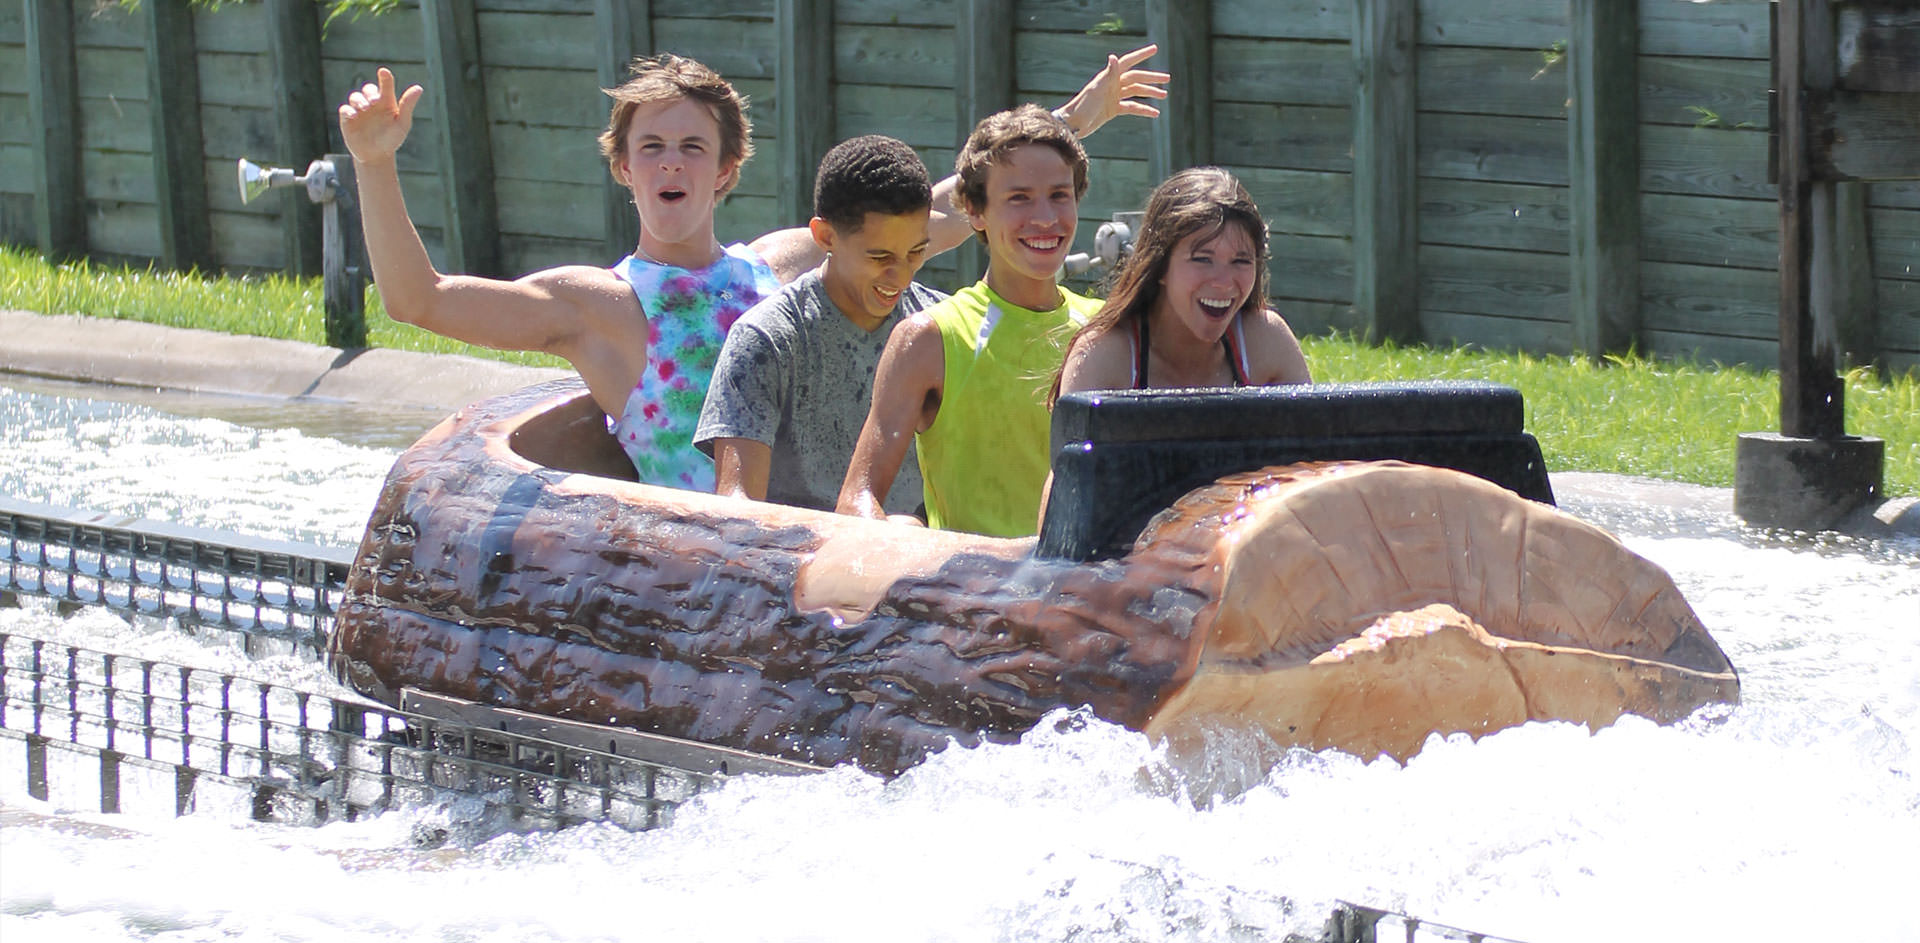 People laughing after getting wet on the Log Flume ride.